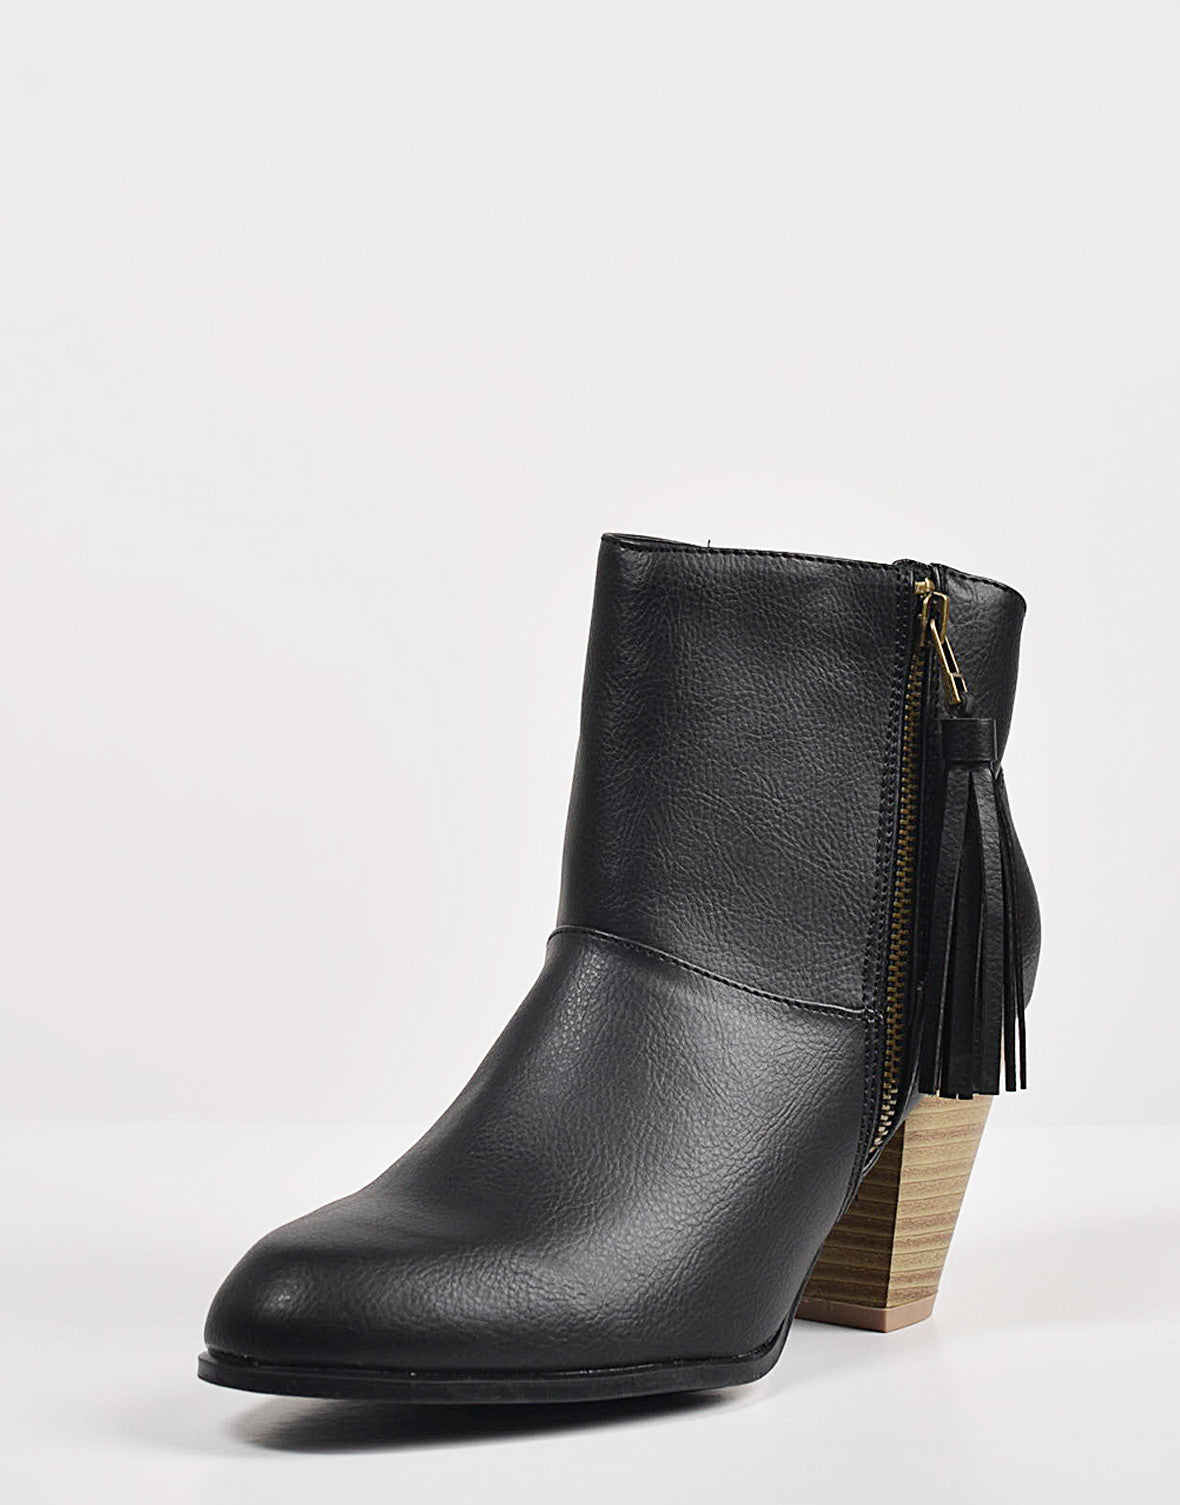 Detail of Tassel Zippered Ankle Booties